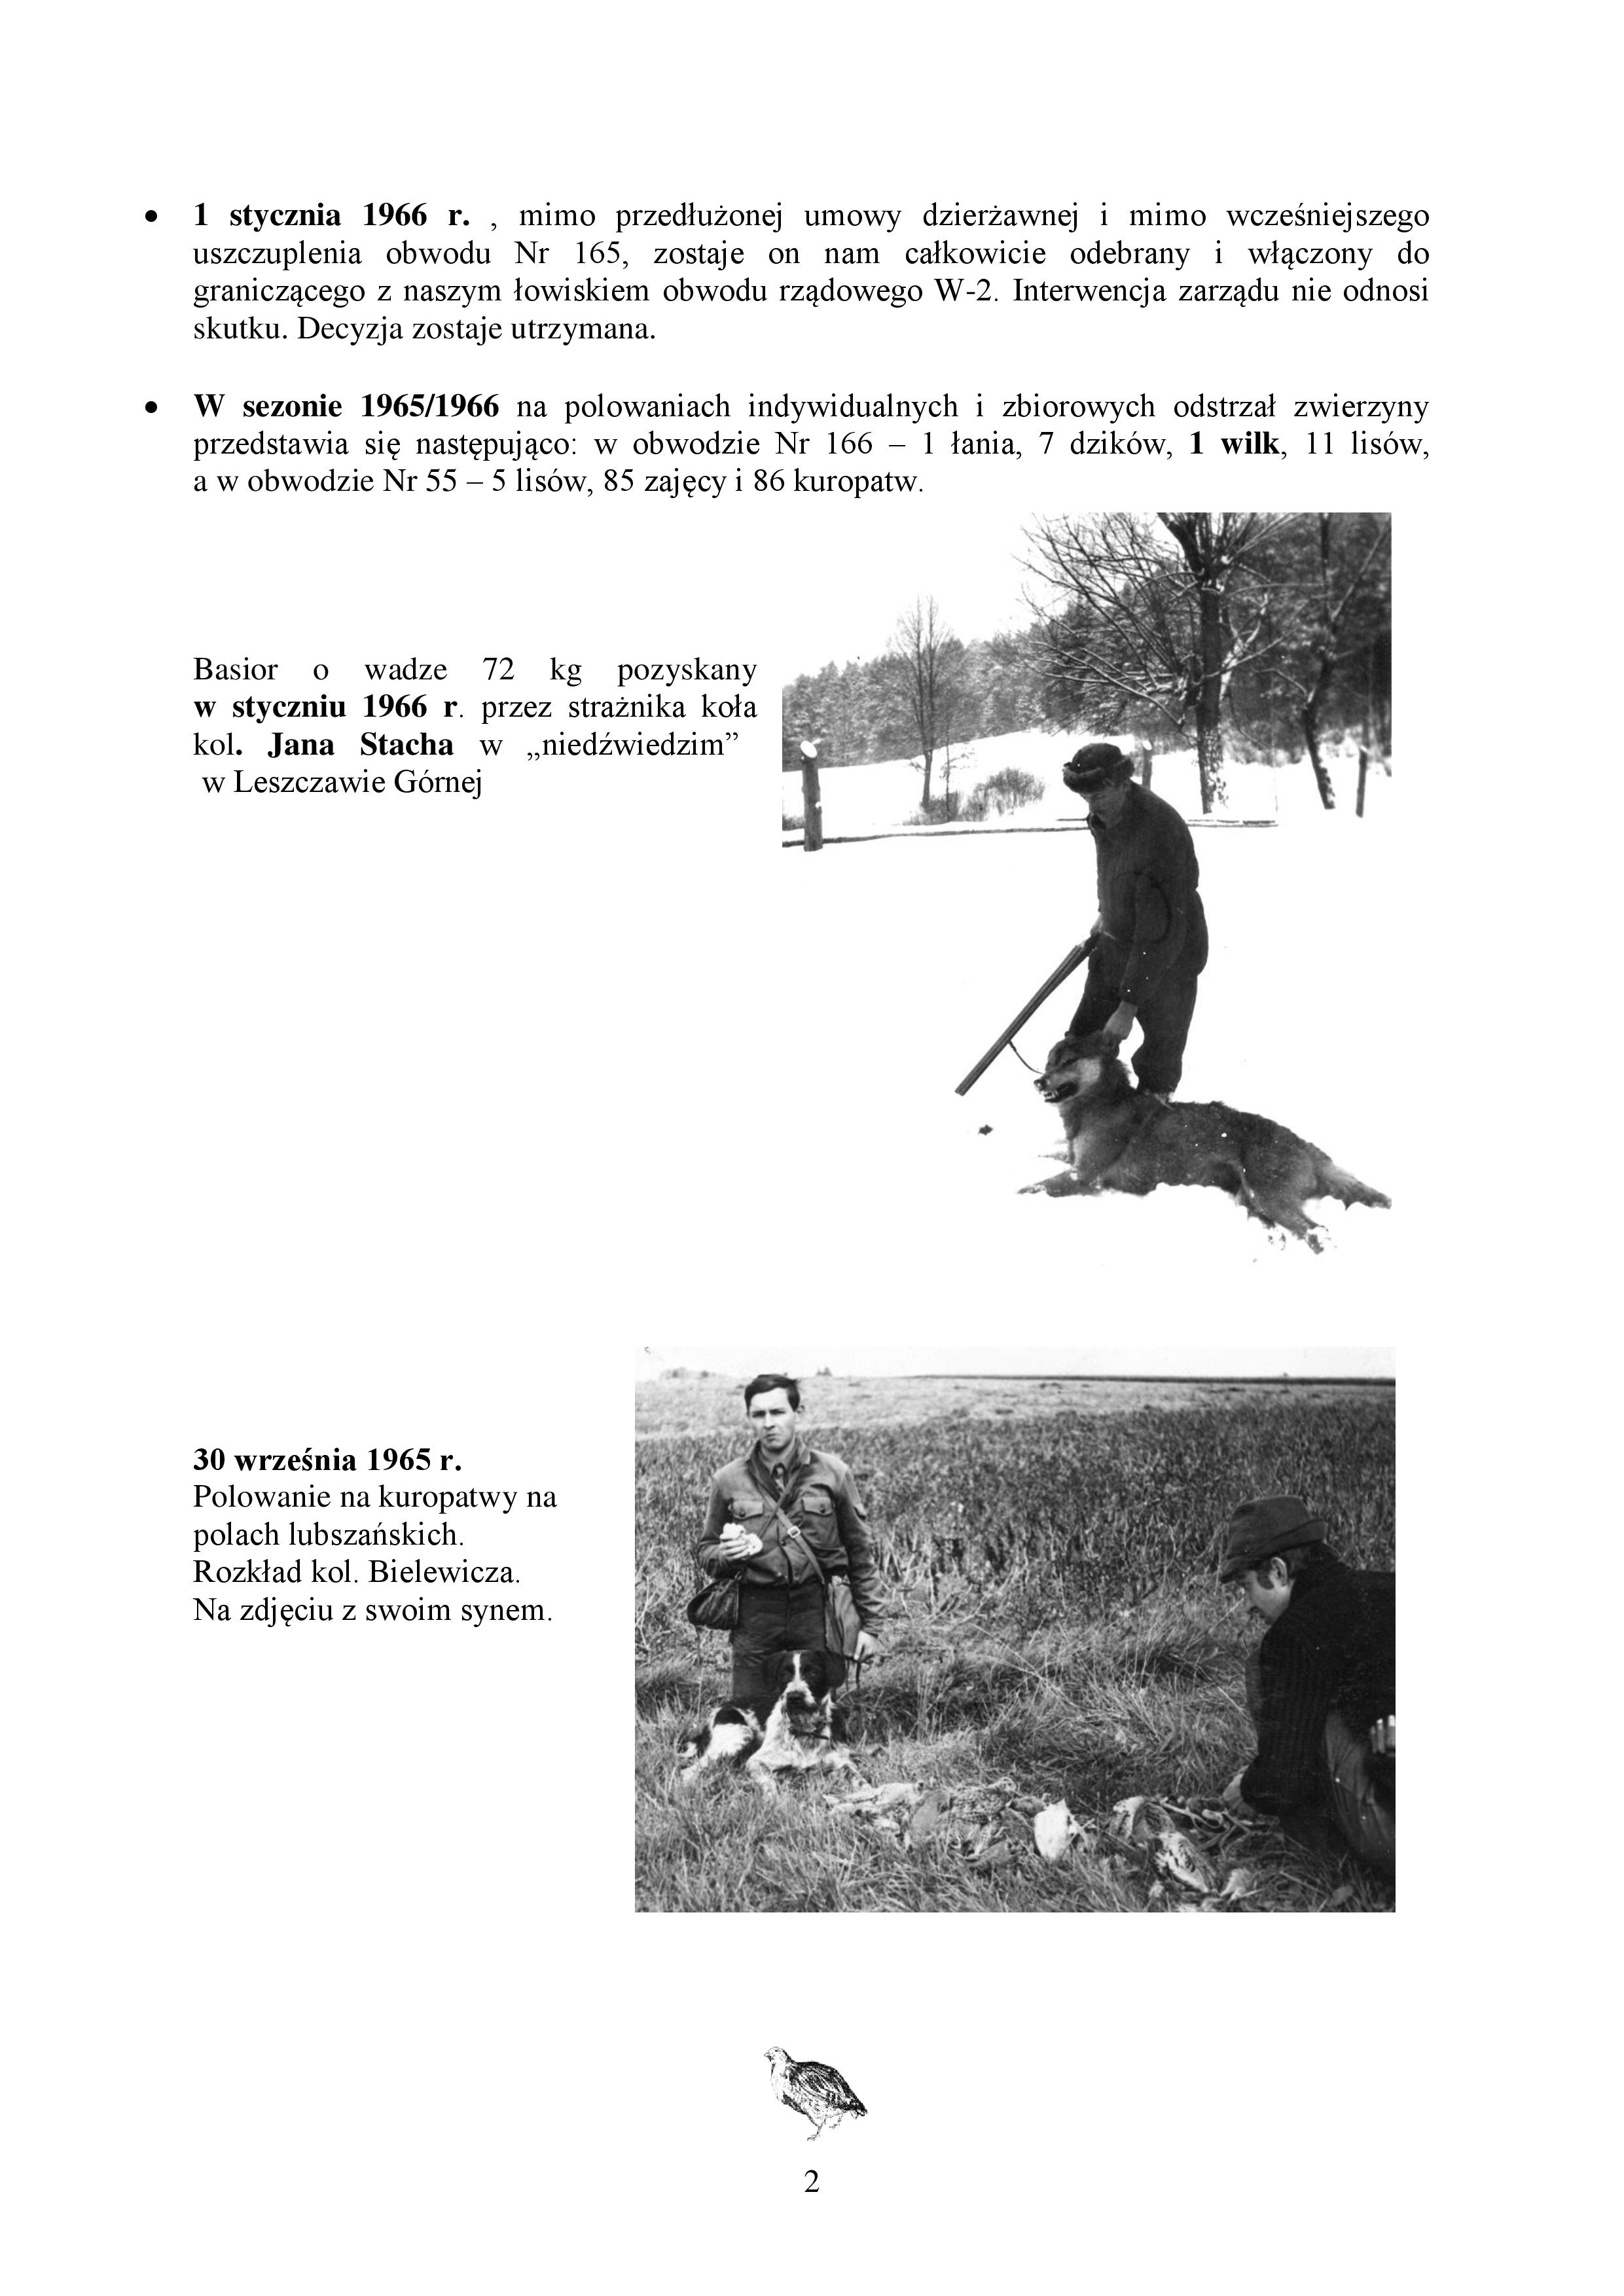 ROK 1965-page-002